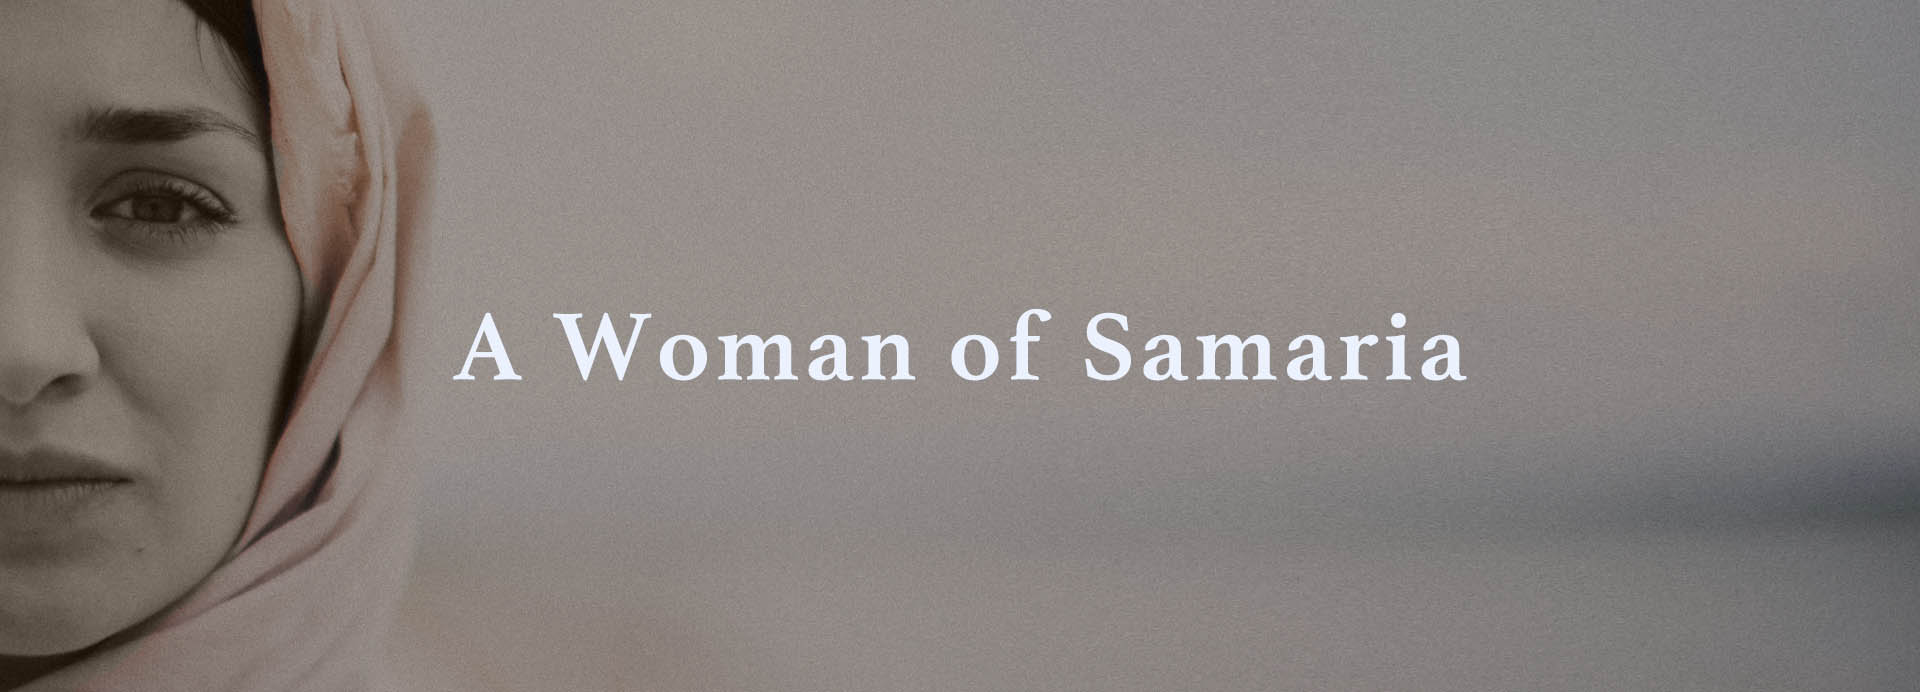 A Woman of Samaria